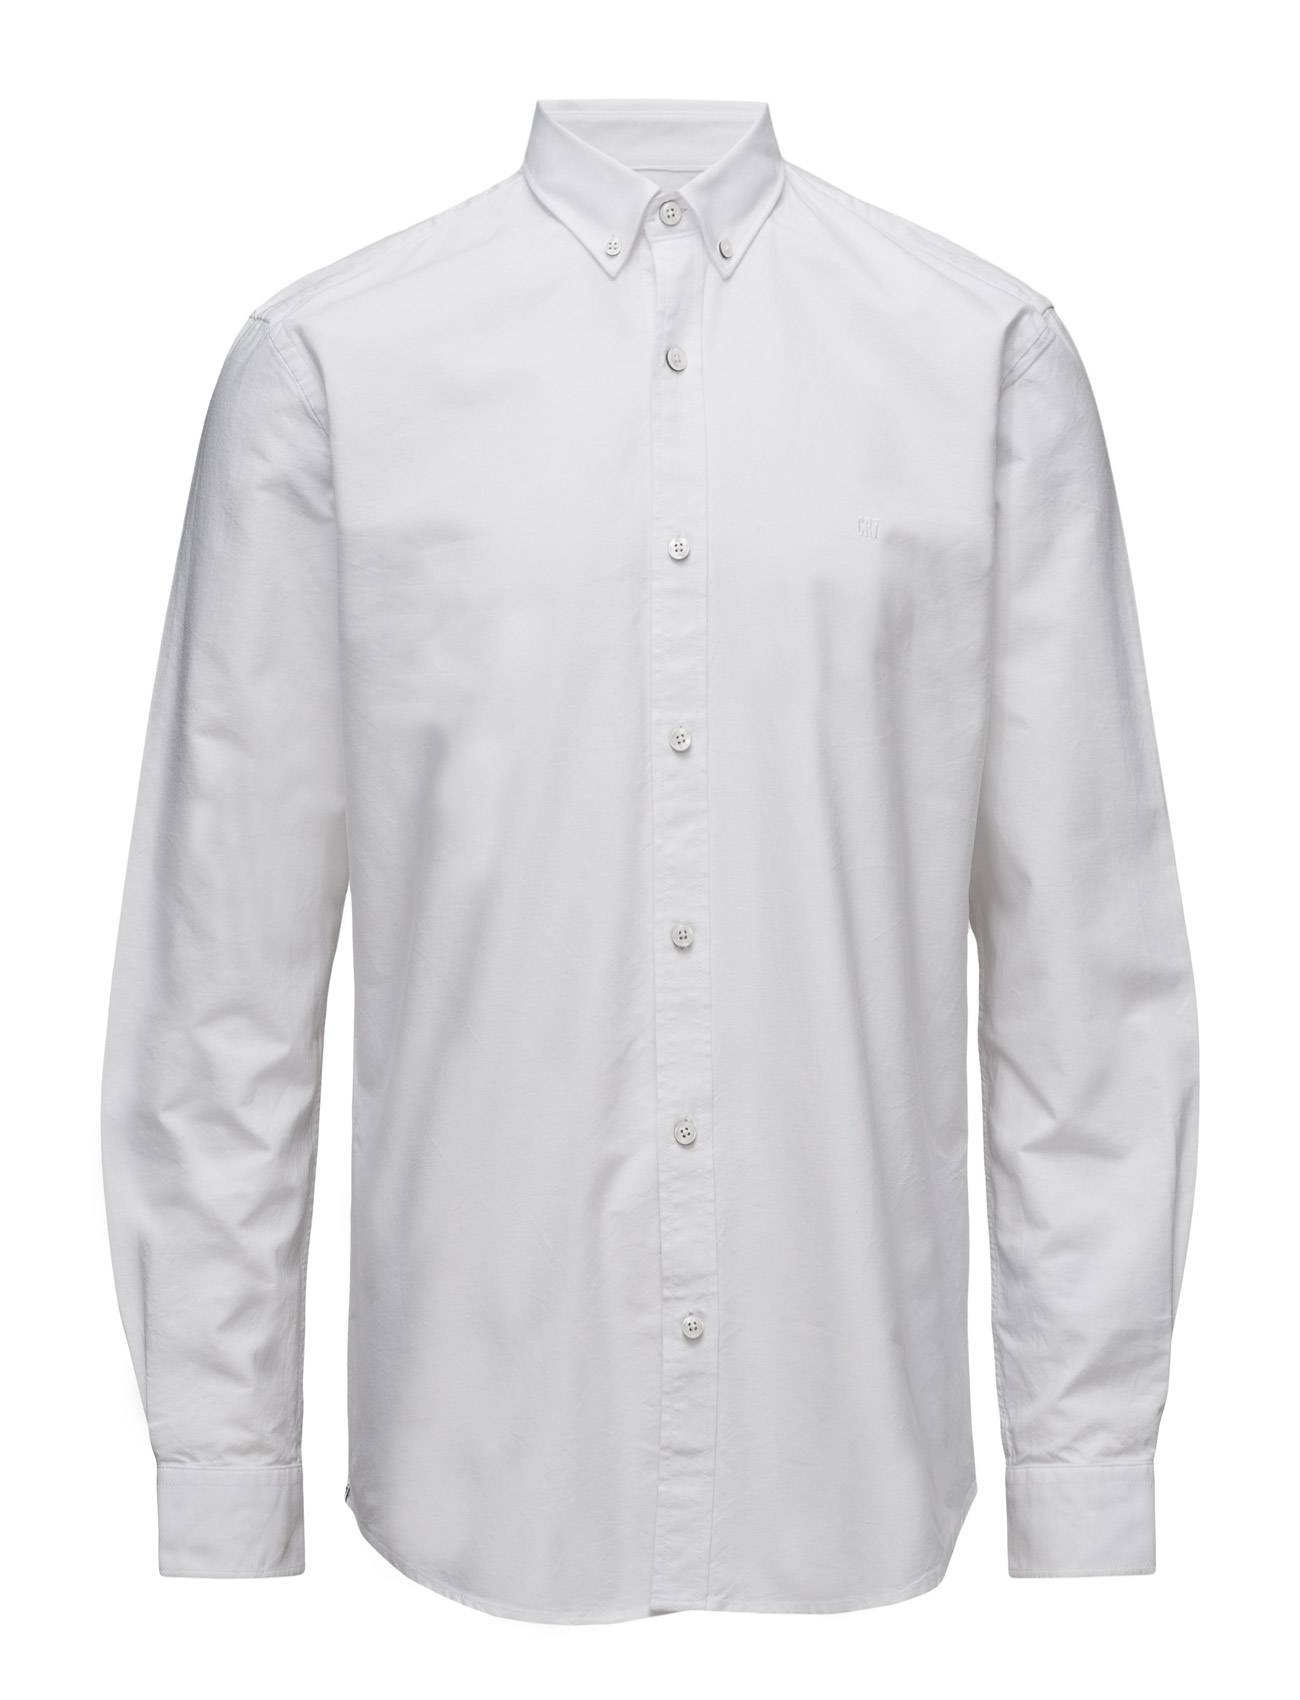 Cr7 Shirt Classic Fit Oxford